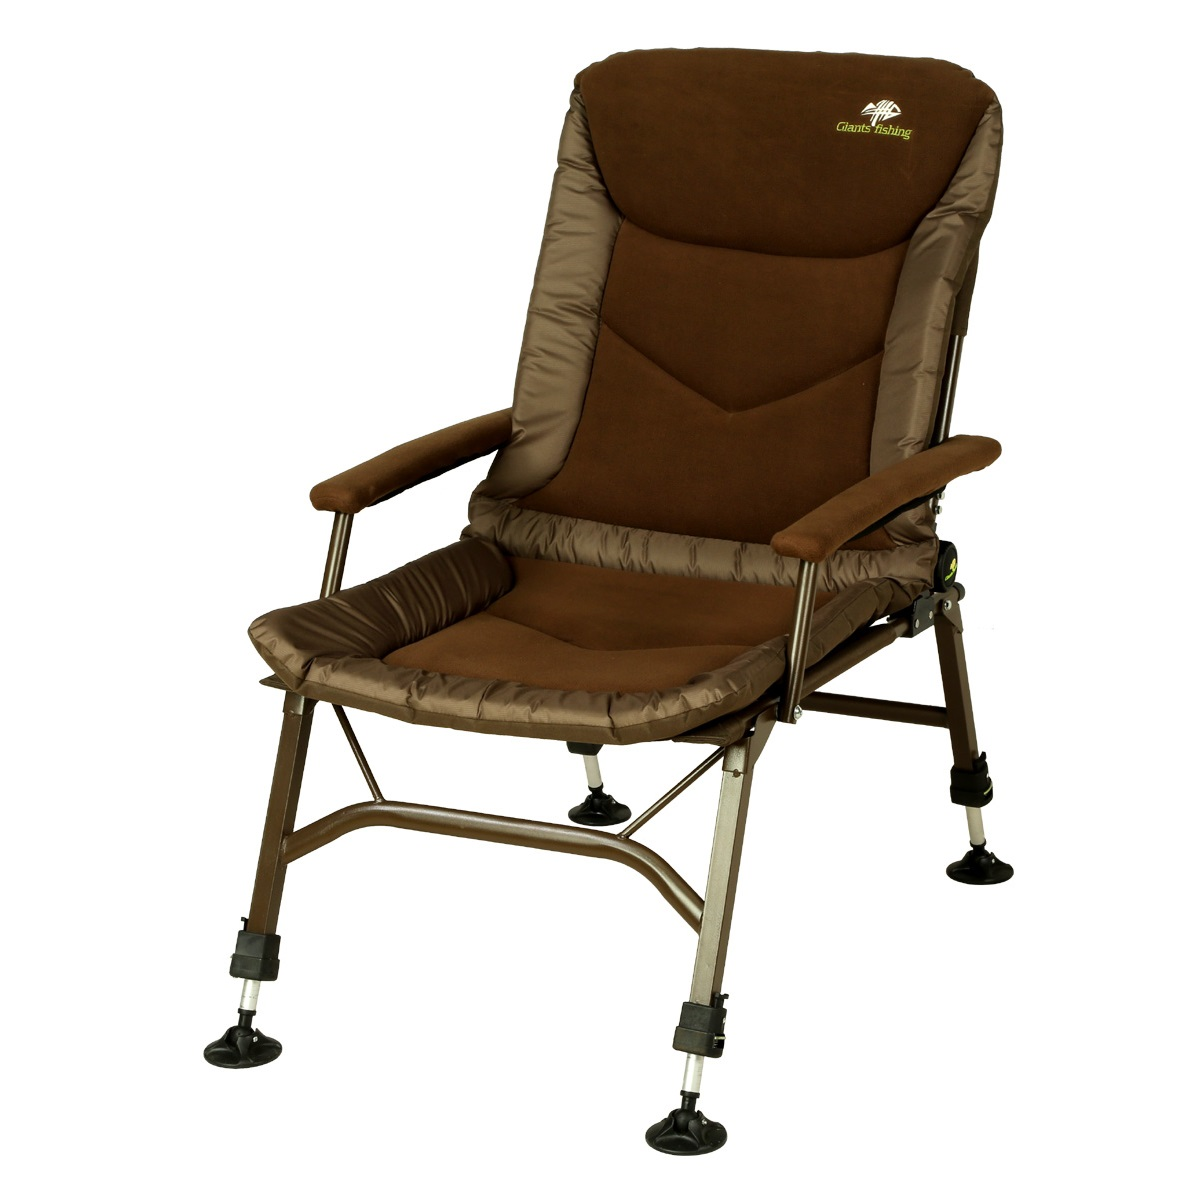 GIANTS FISHING - Sedačka RWX Plus Fleece Chair